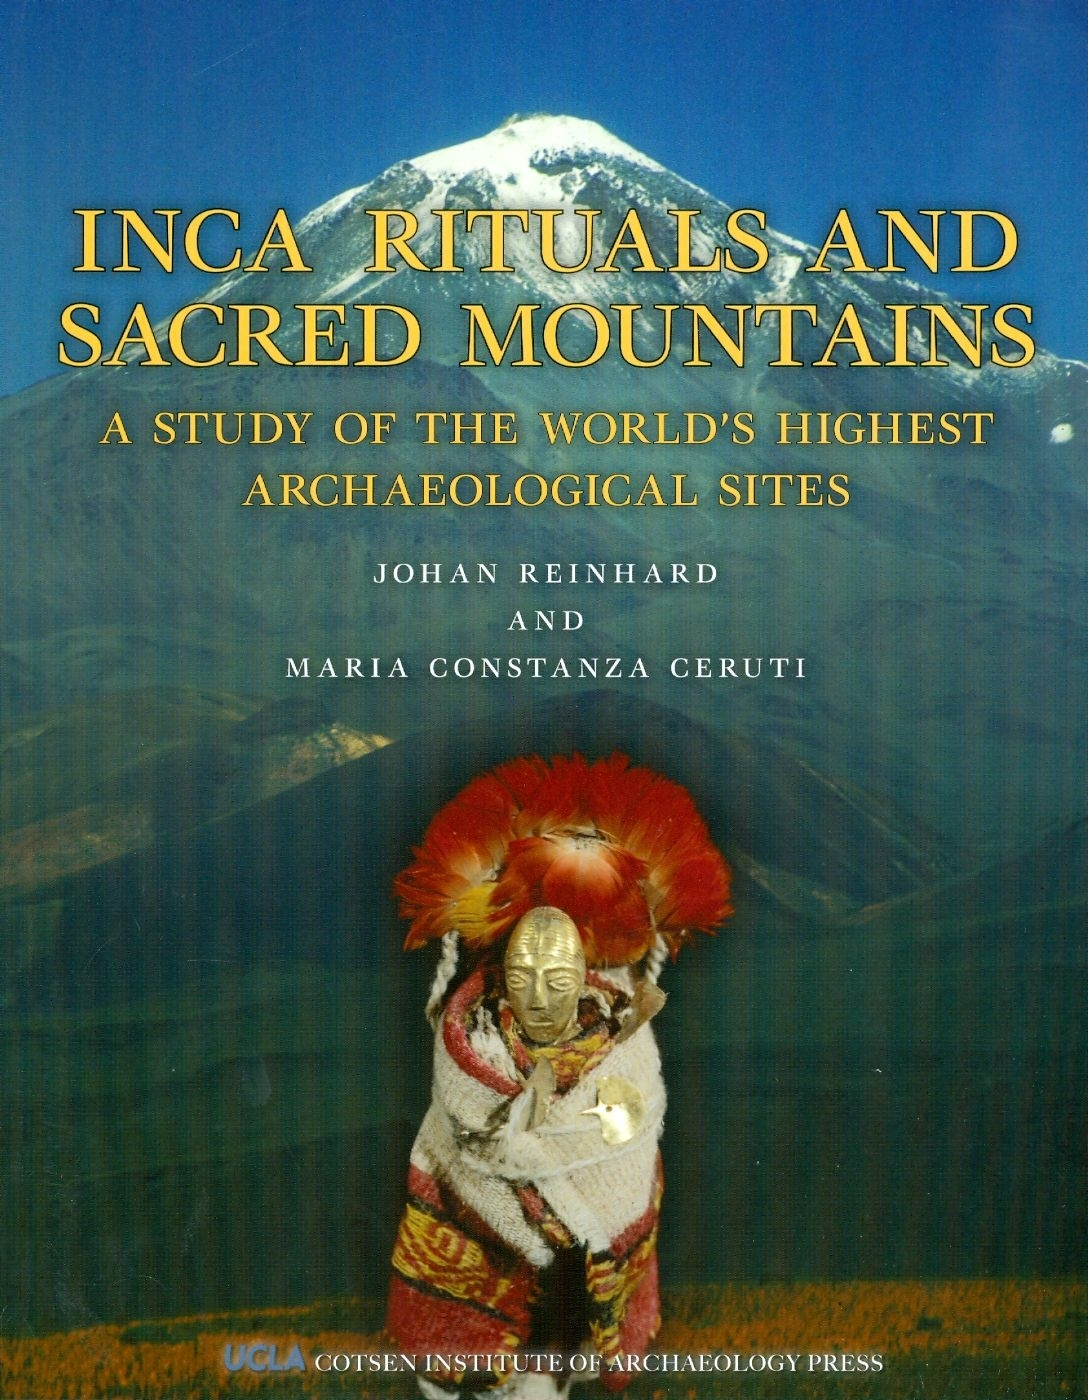 Read Inca Rituals and Sacred Mountains: A Study of the World's Highest Archaeological Sites